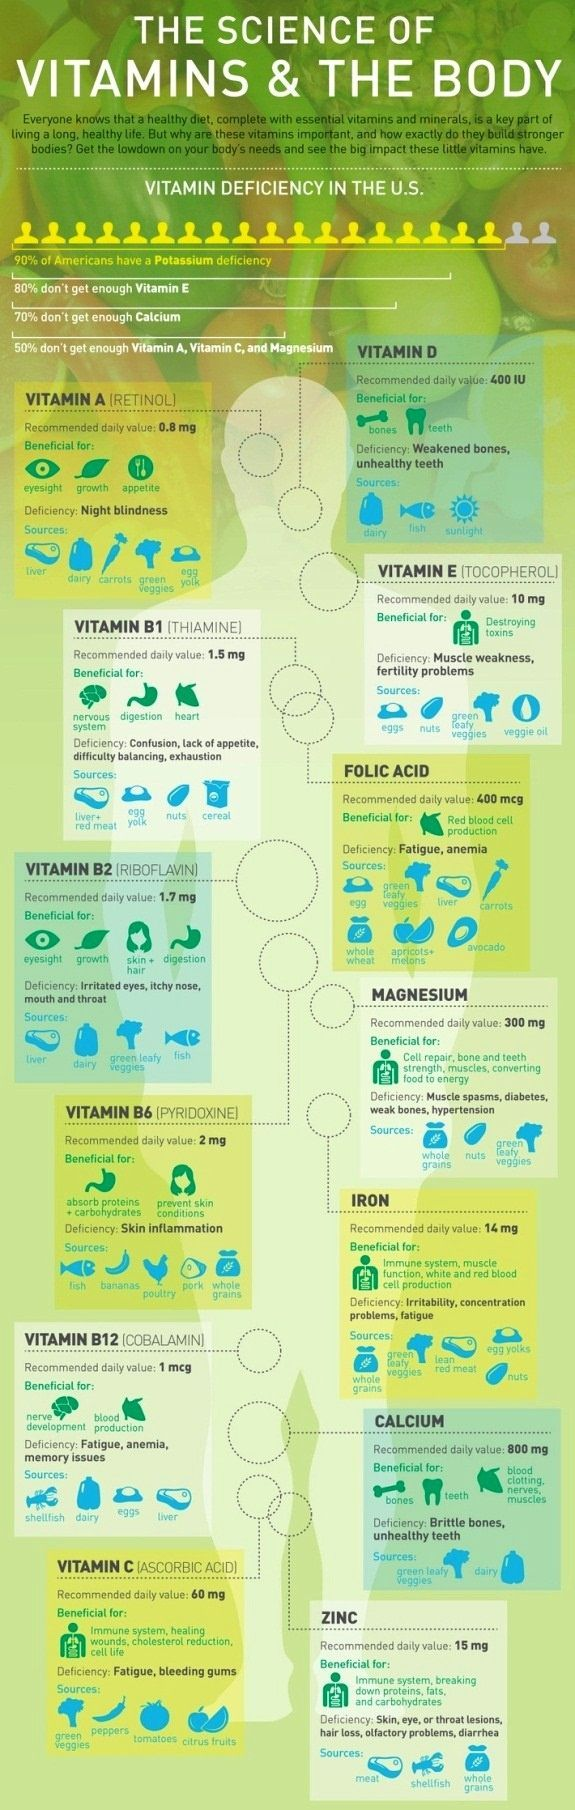 The Science of Vitamins and the Body ... vitamins, their daily values in mg, their uses/what they're good for